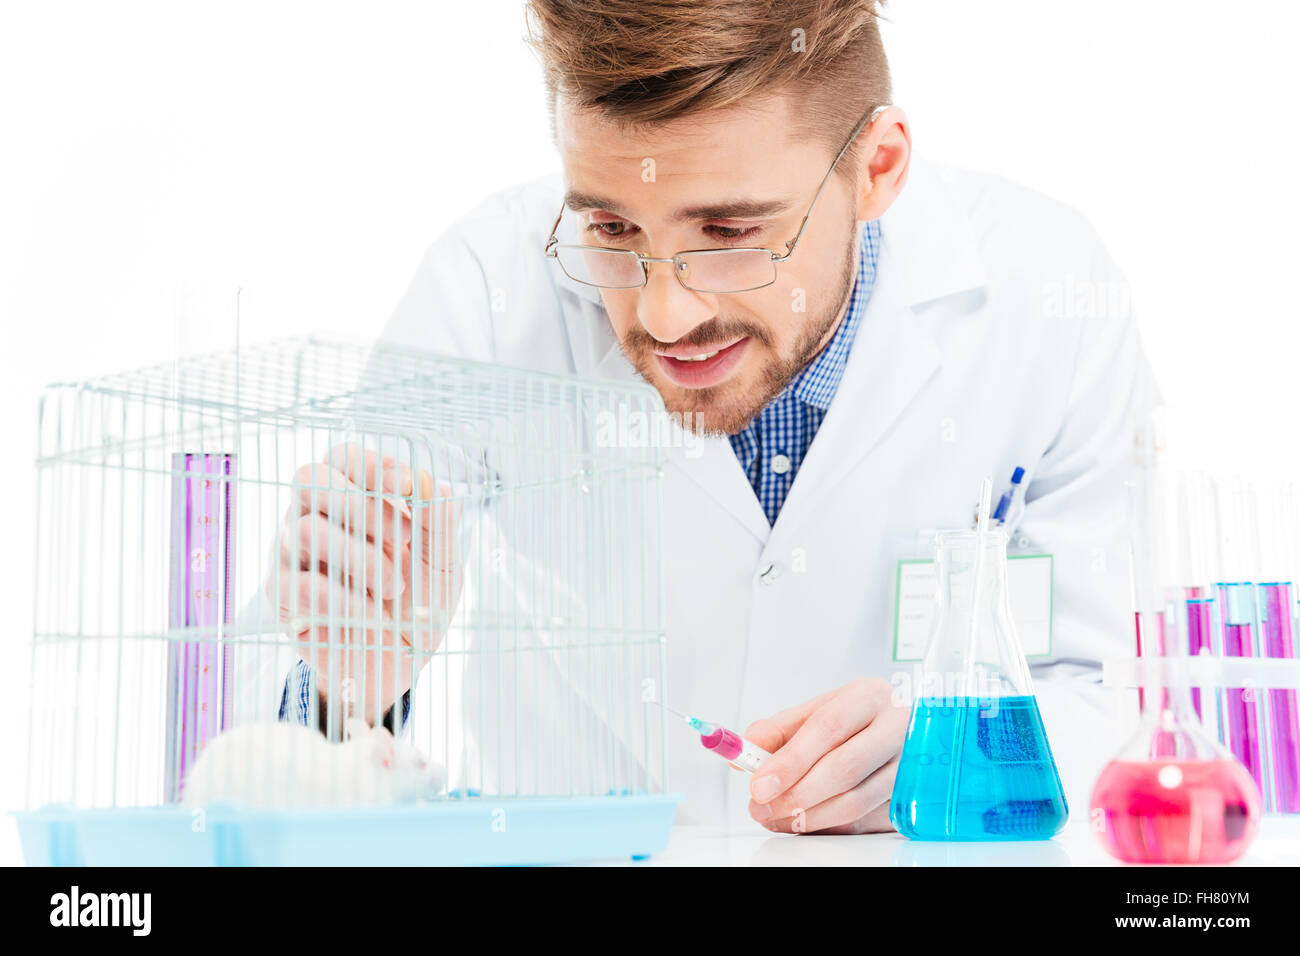 Male scientist doing experiments with rat in a laboratory - Stock Image